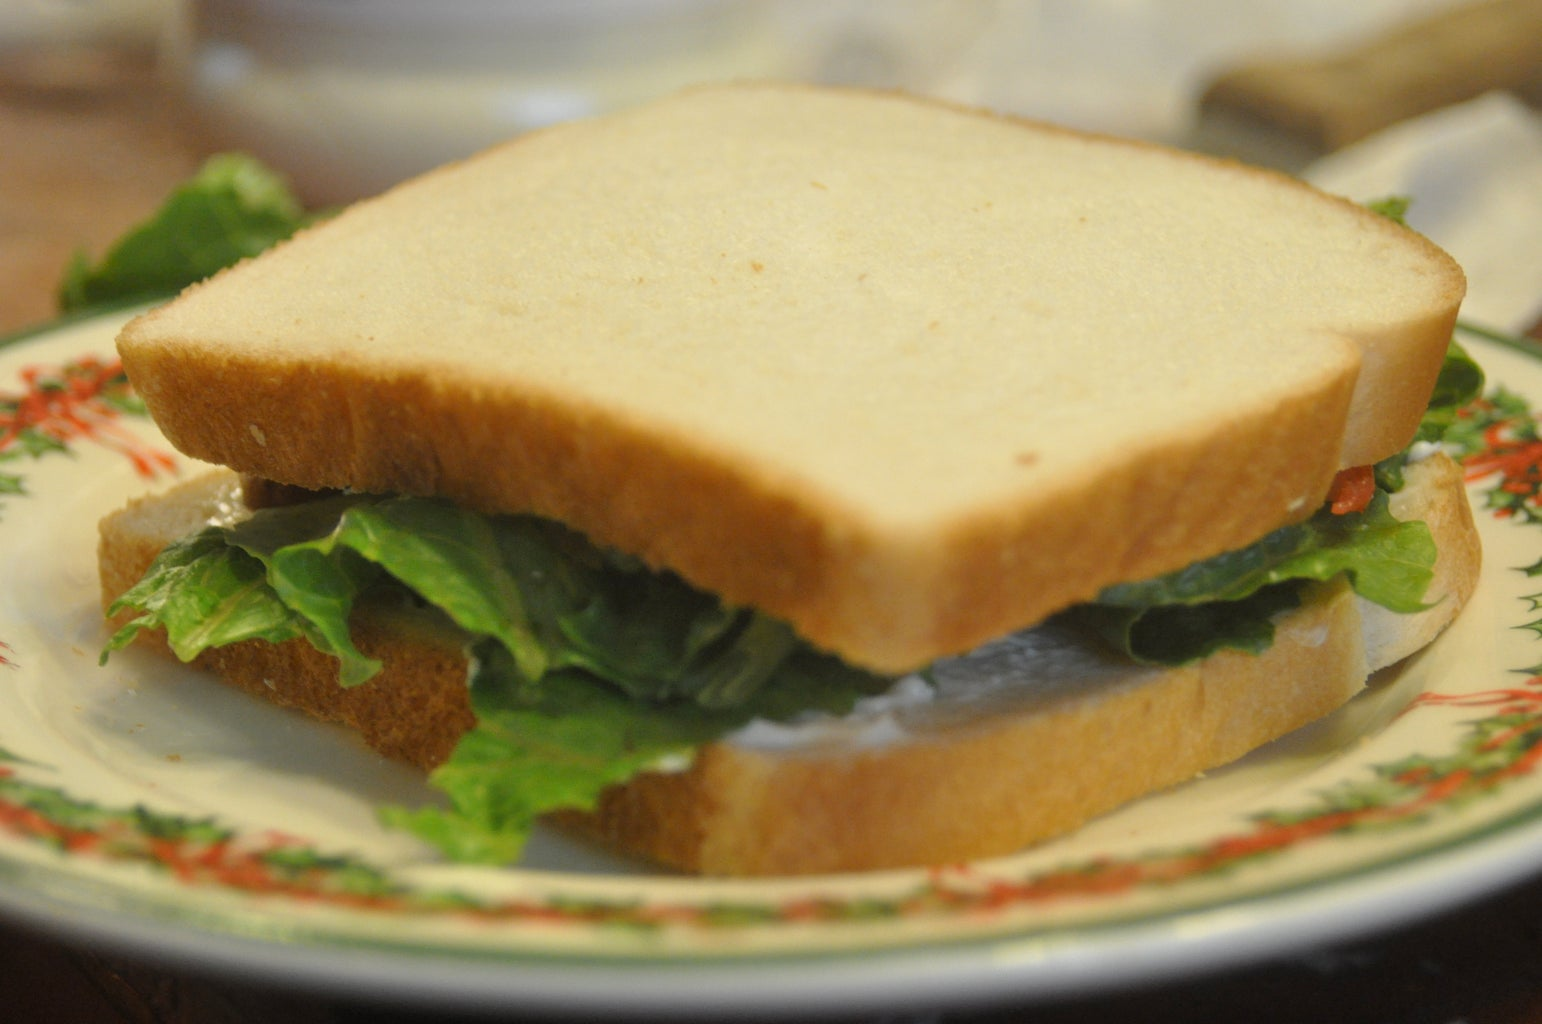 How to Make a BLT With Squeez Bacon